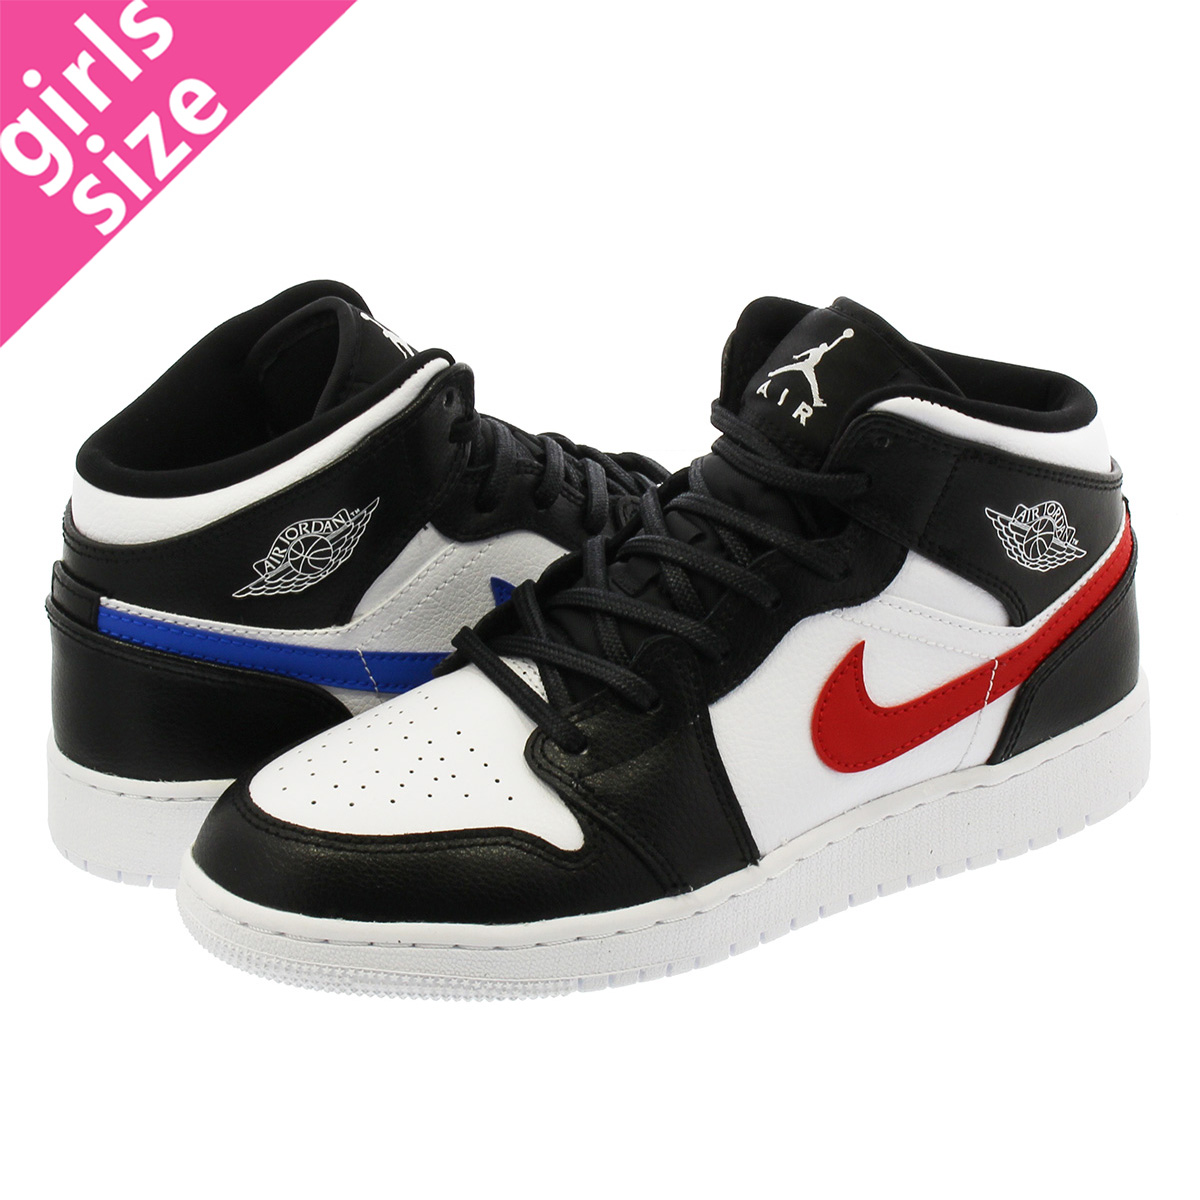 9448d018b0611d NIKE AIR JORDAN 1 MID BG Nike Air Jordan 1 mid BG BLACK WHITE RED  YELLOW BLUE GREEN 554